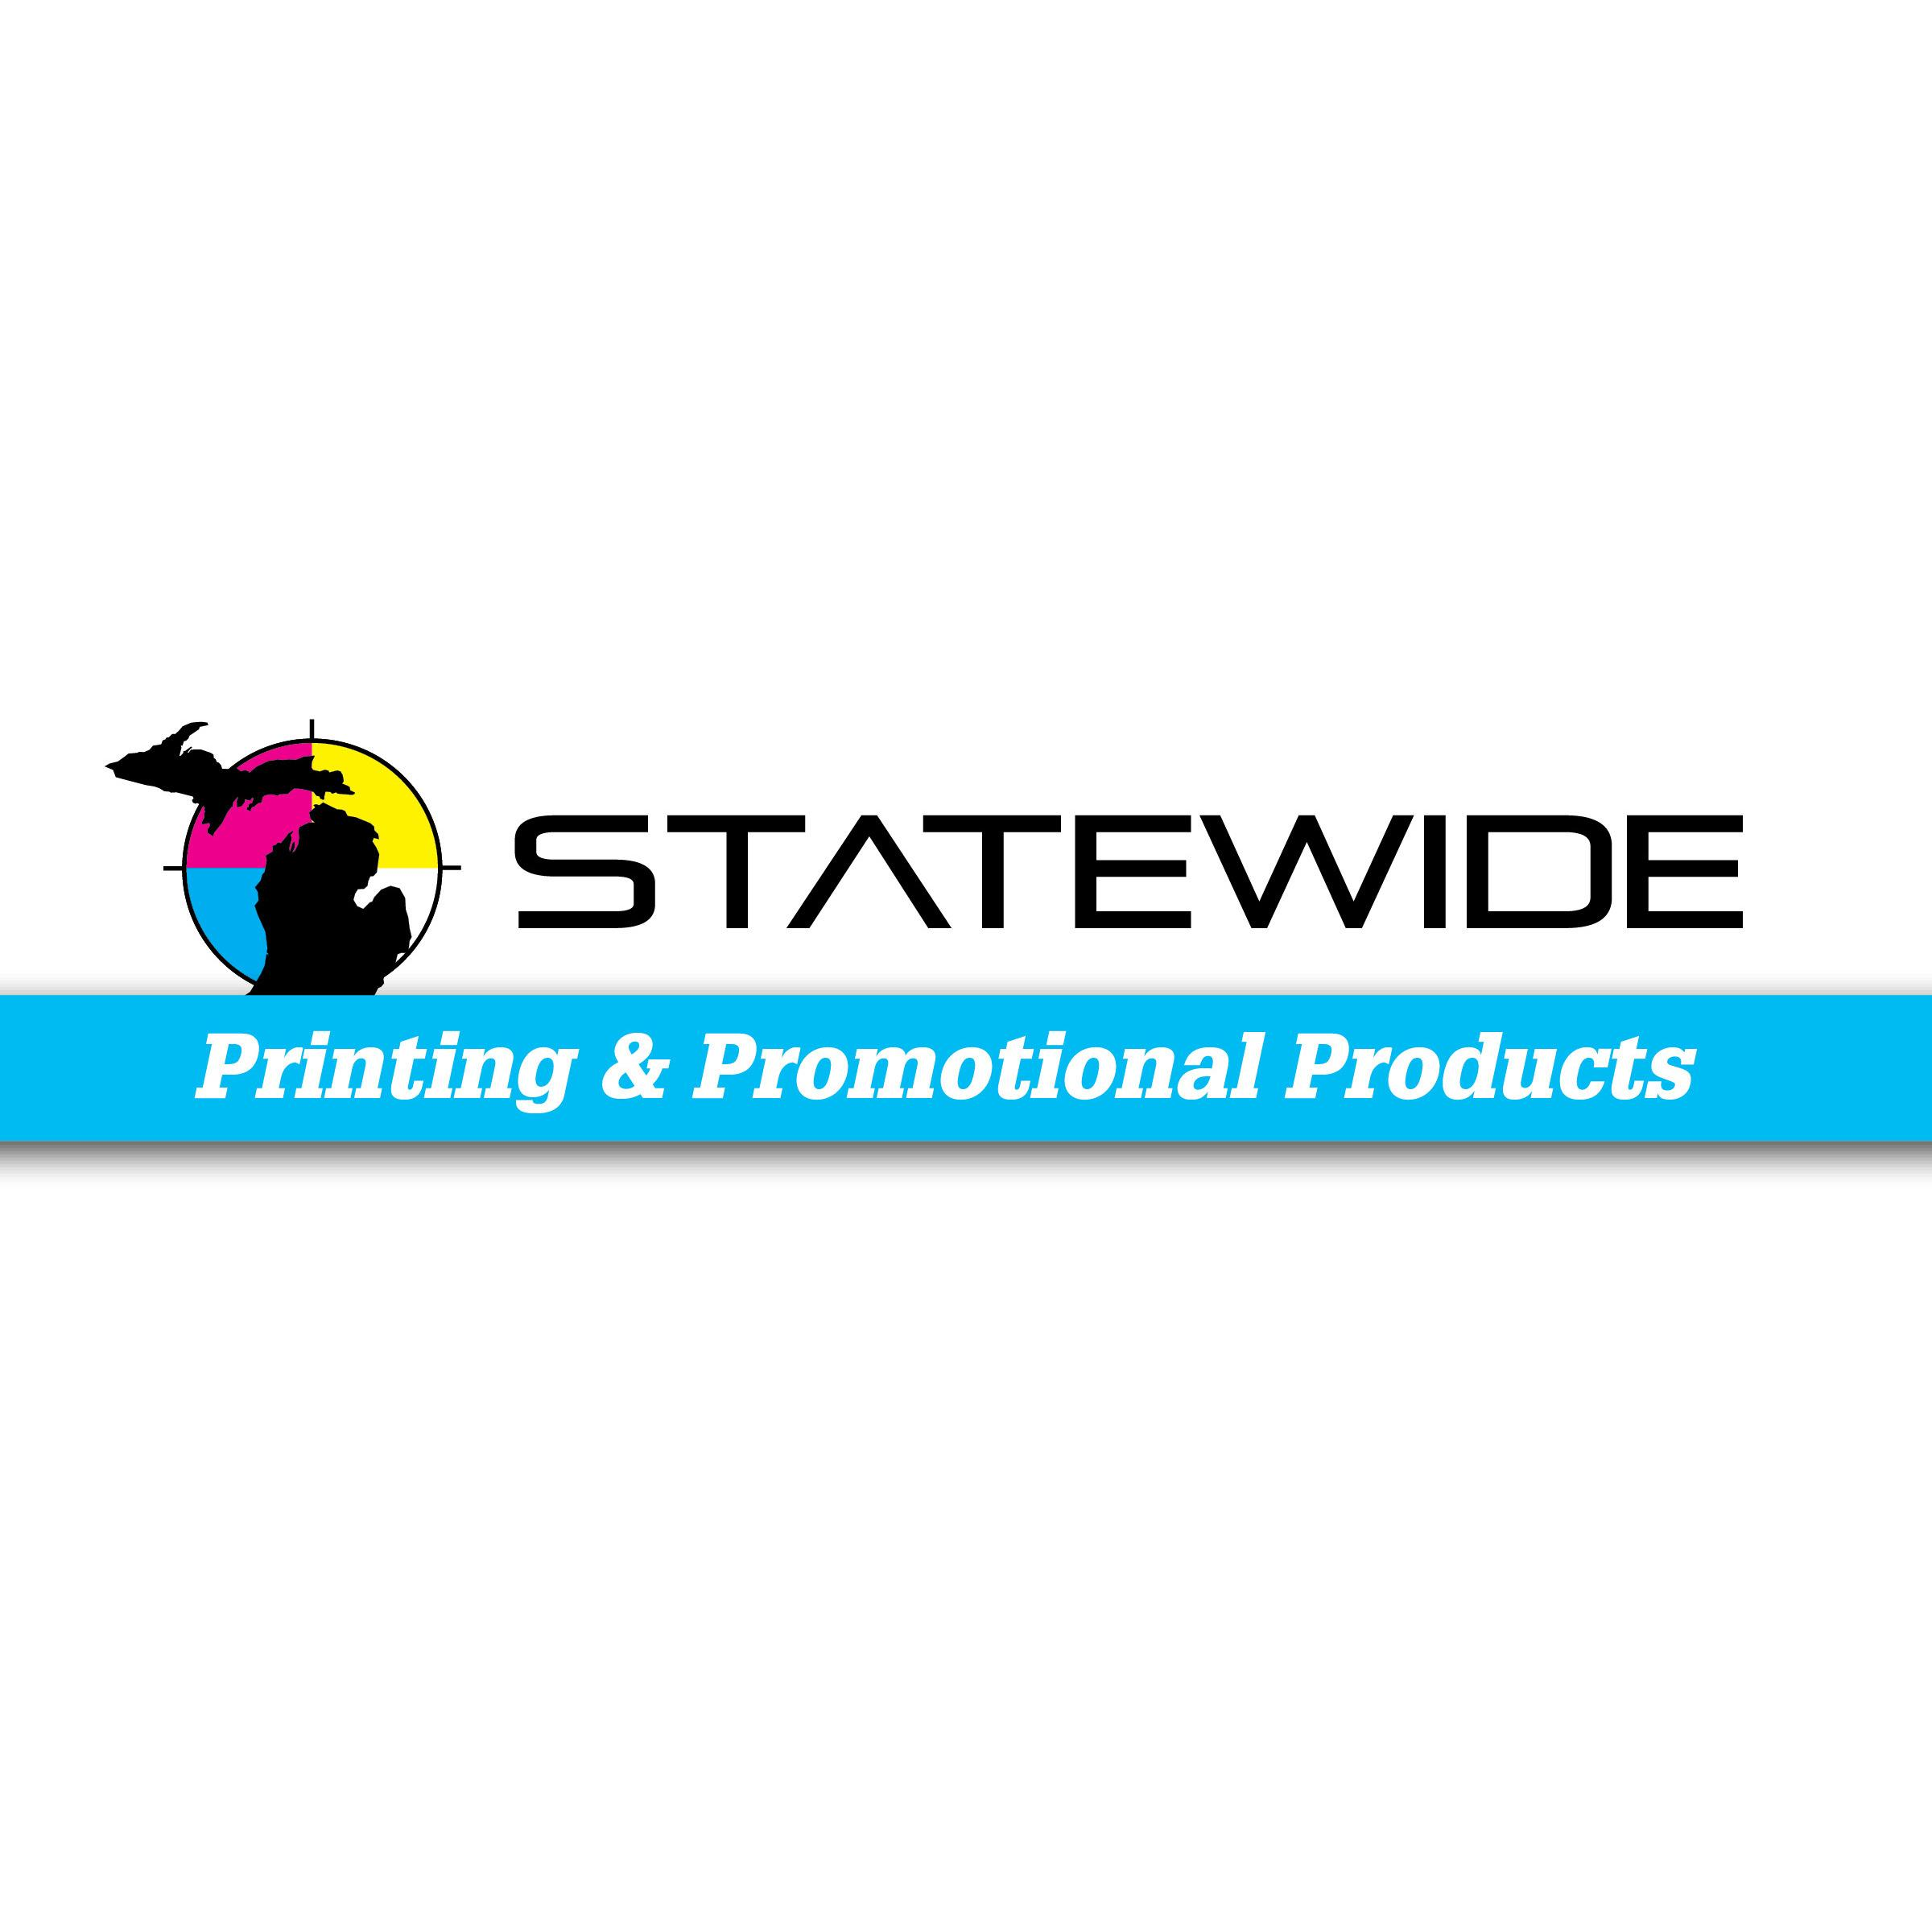 Statewide Printing & Promotional Products